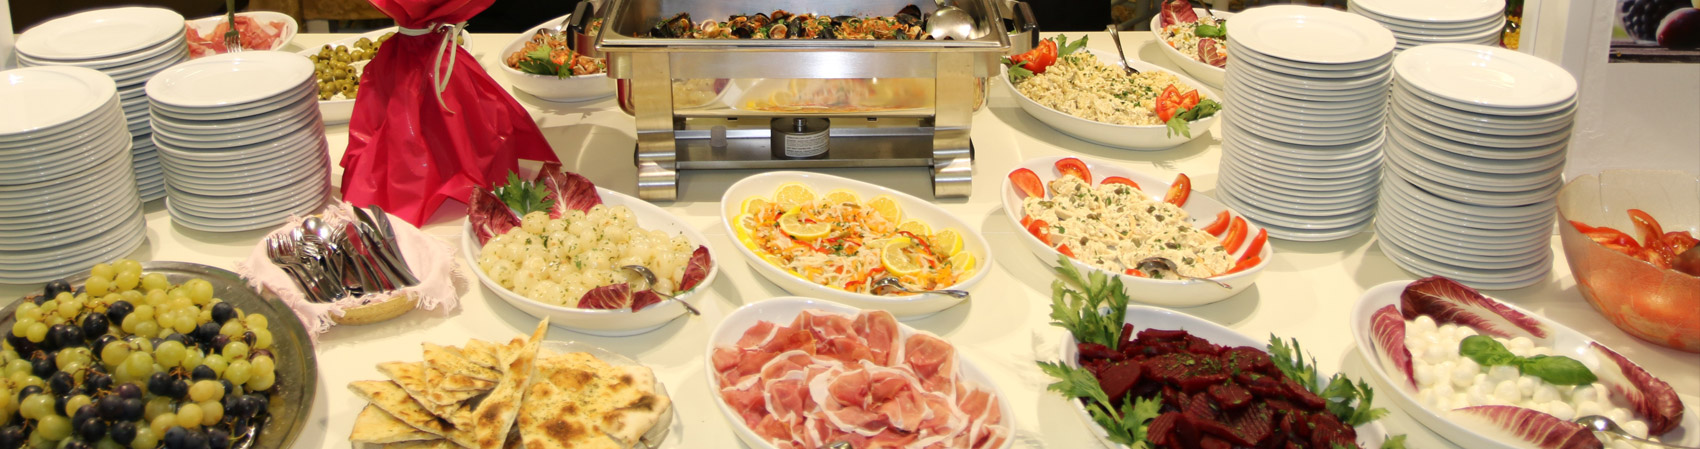 hotel-international-jesolo-slider-ristorante-a-buffet